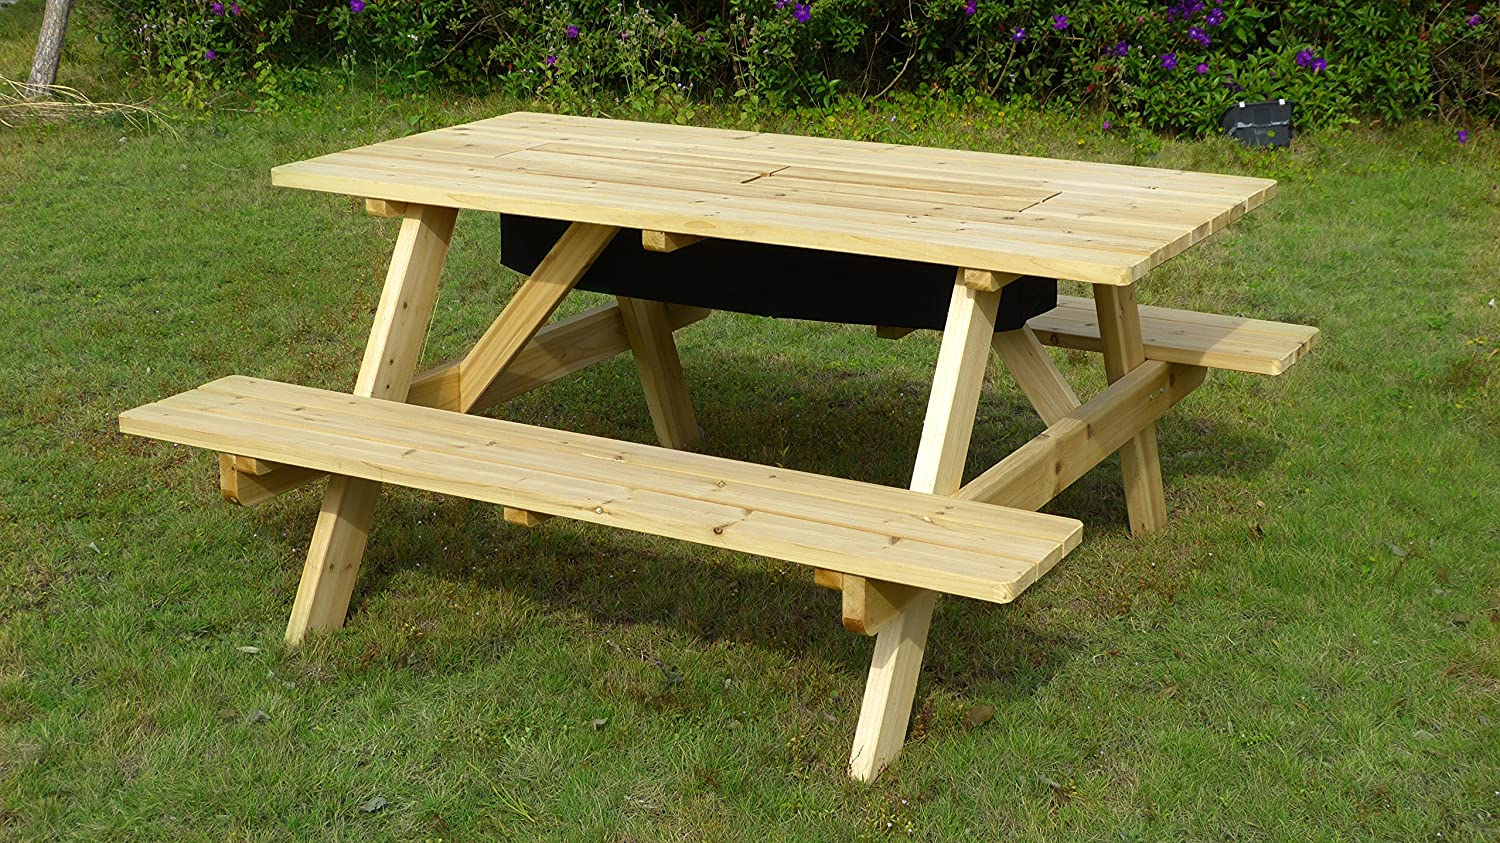 Merry Garden Cooler Wooden Picnic Table and Bench Kit Outdoor Patio Dining Table, Natural